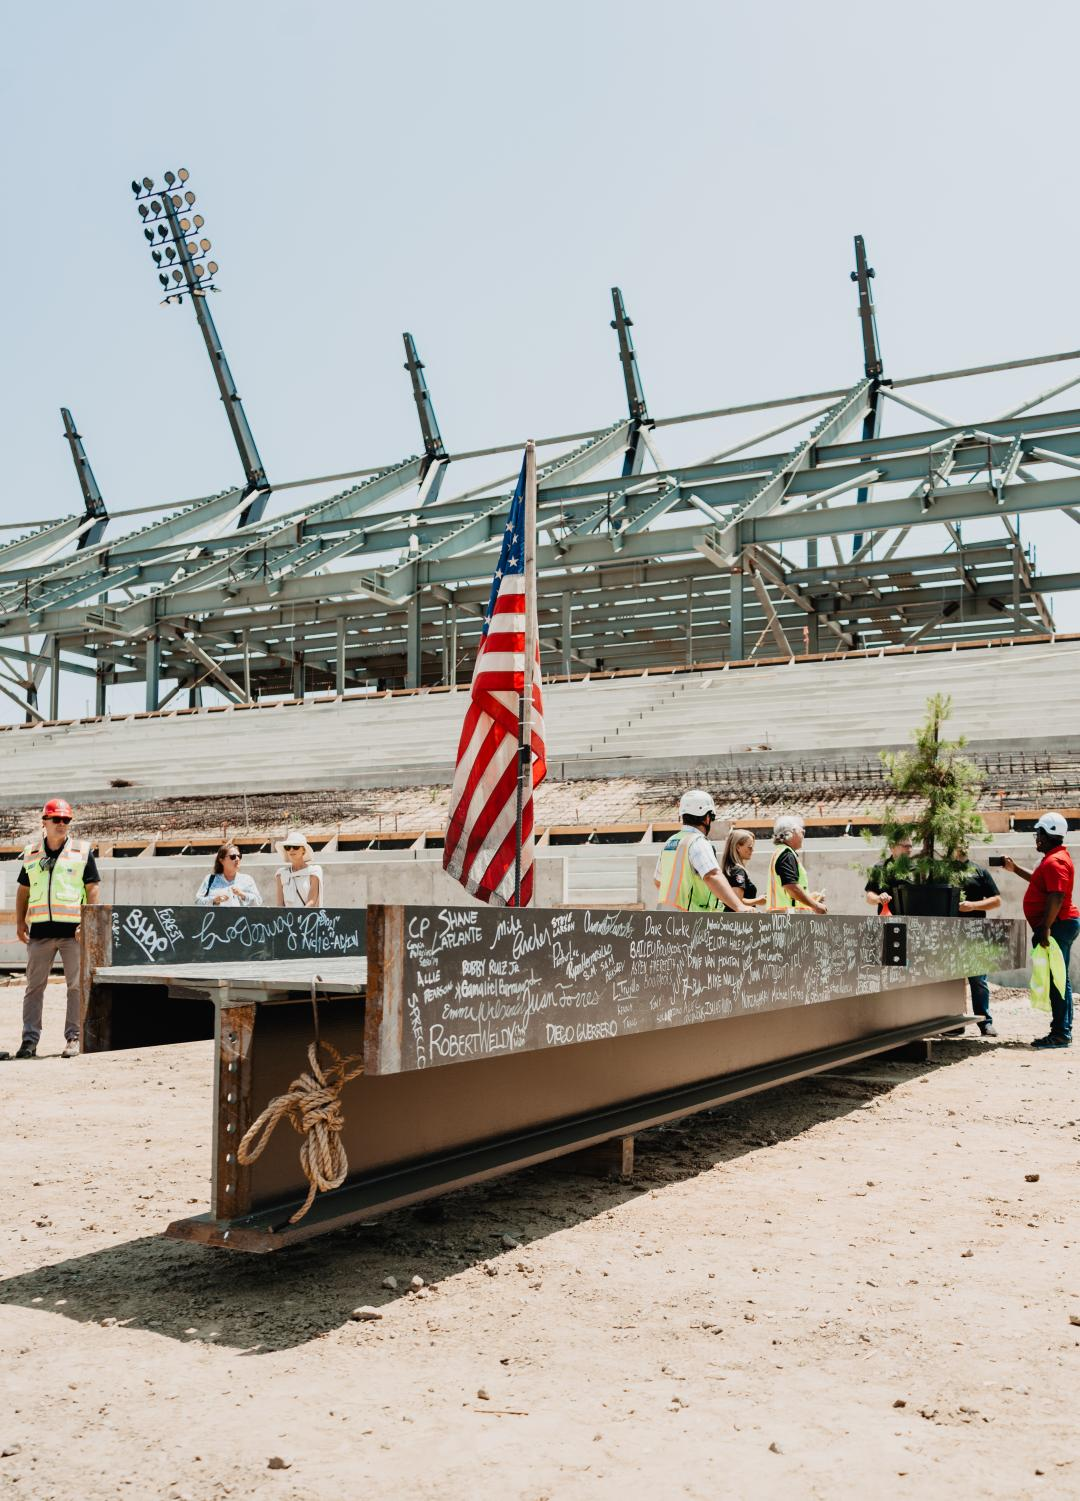 One of the 2,500 steel beams that makes up the stadium structure.